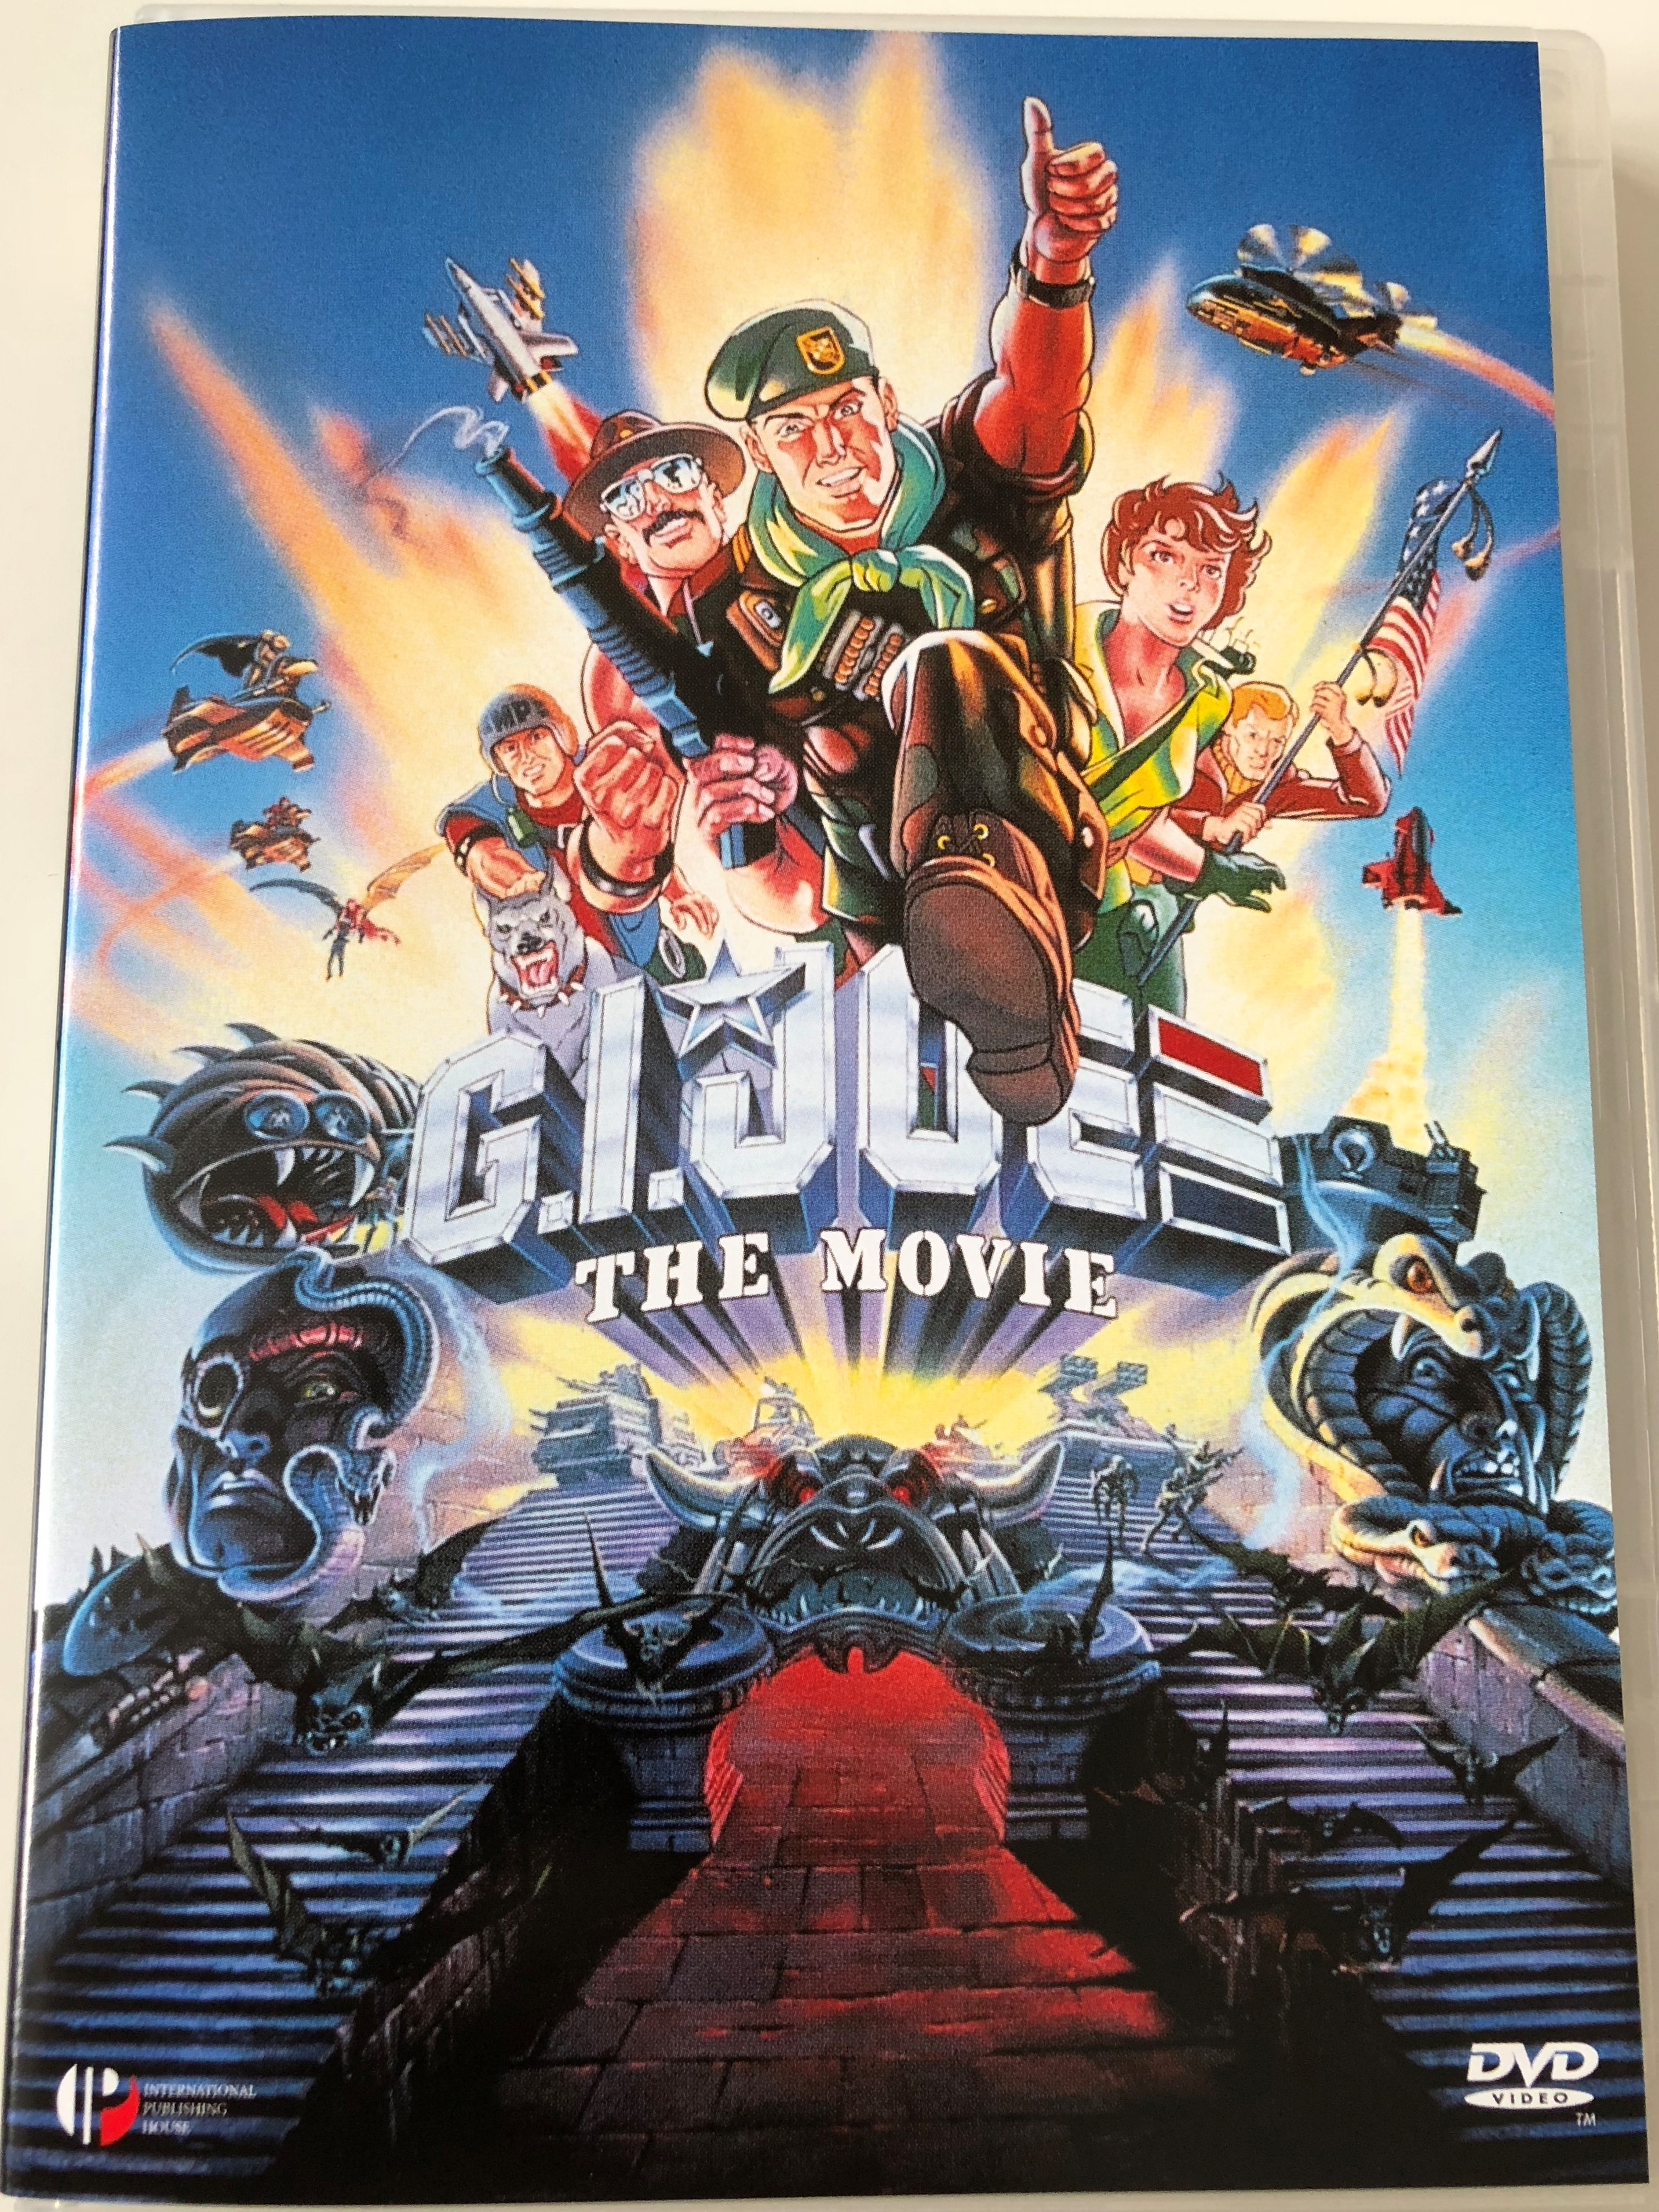 -g.i.-joe-the-movie-dvd-1987-directed-by-don-jurwich-starring-don-johnson-burgess-meredith-sgt.-slaughter-aka-action-force-the-movie-1-.jpg